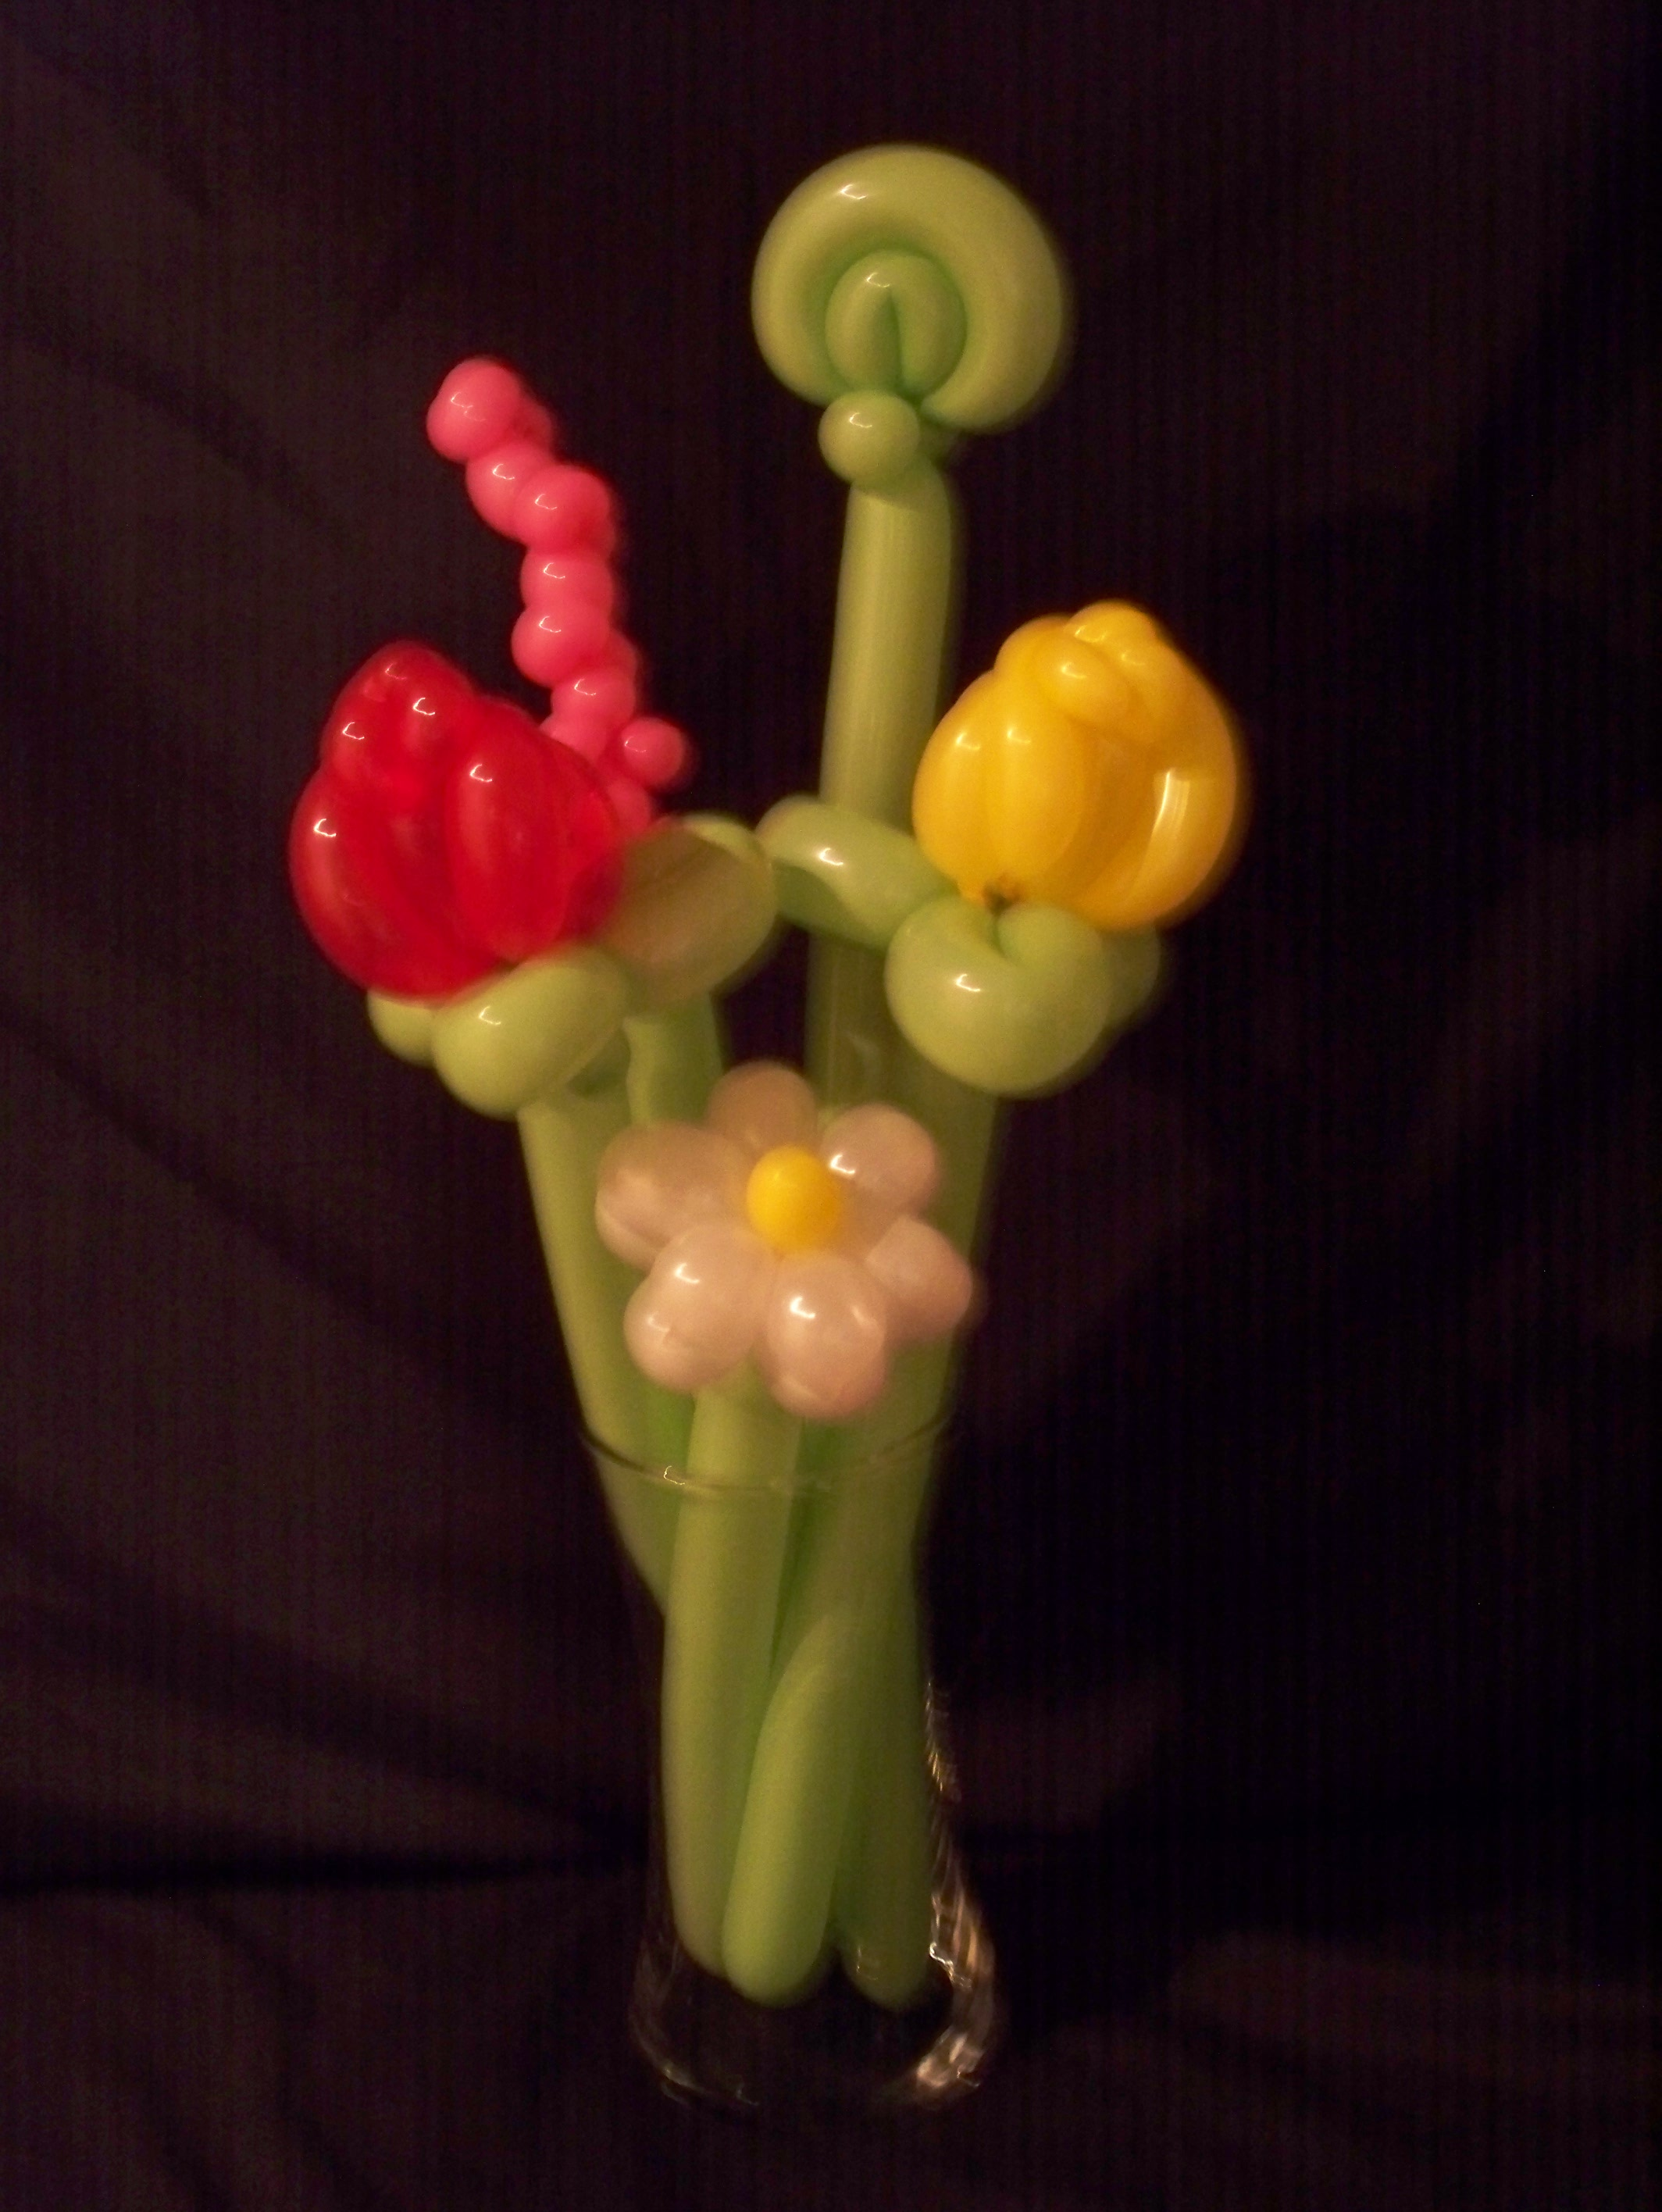 Rose and Daisy Balloon Bouquet